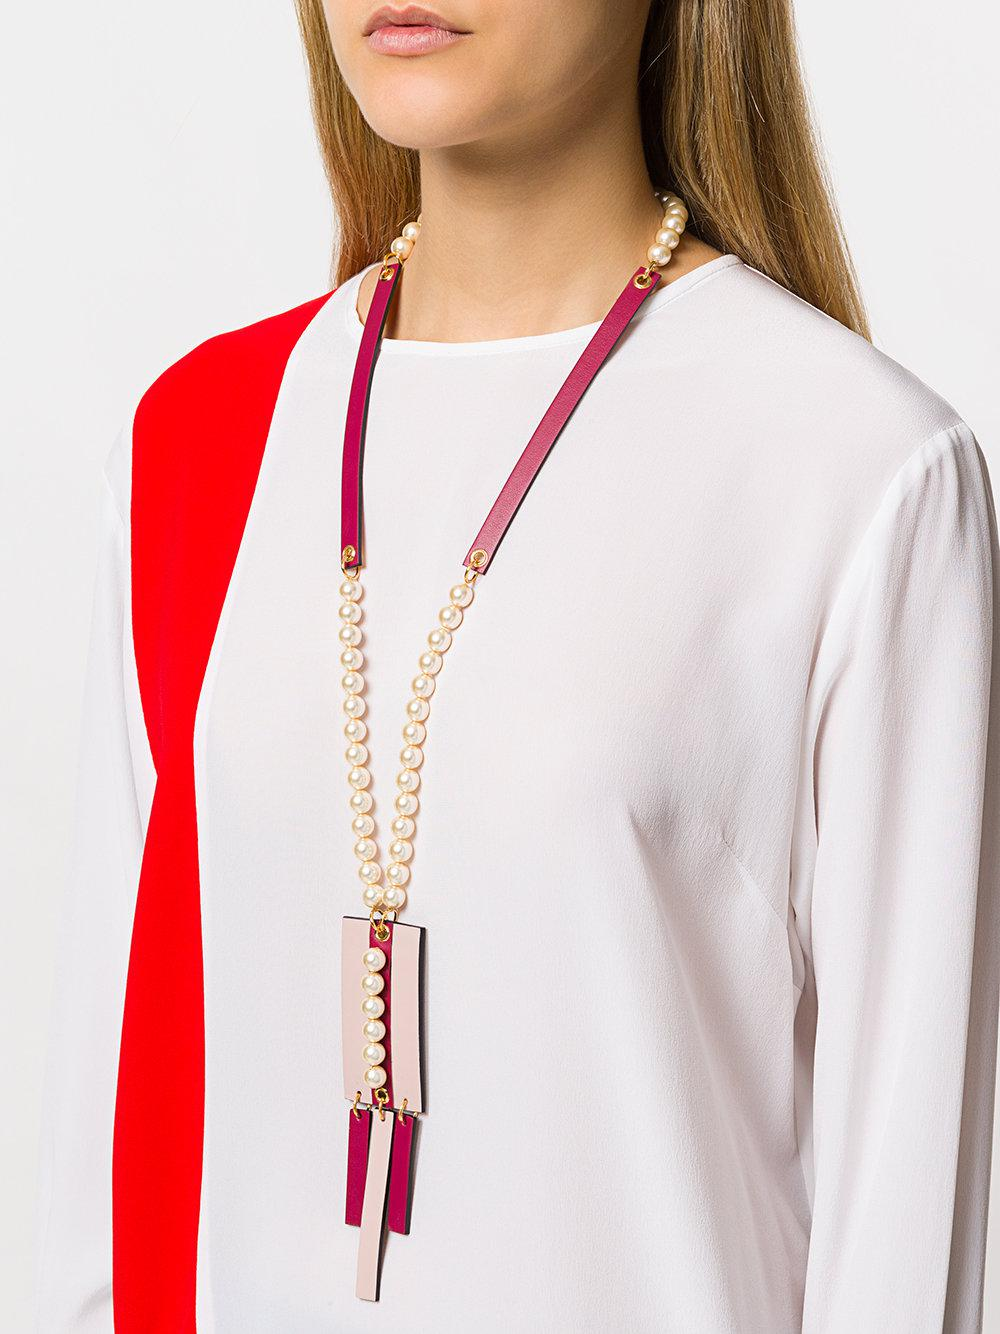 Marni Leather Embellished Pendant Necklace in Pink & Purple (Pink)